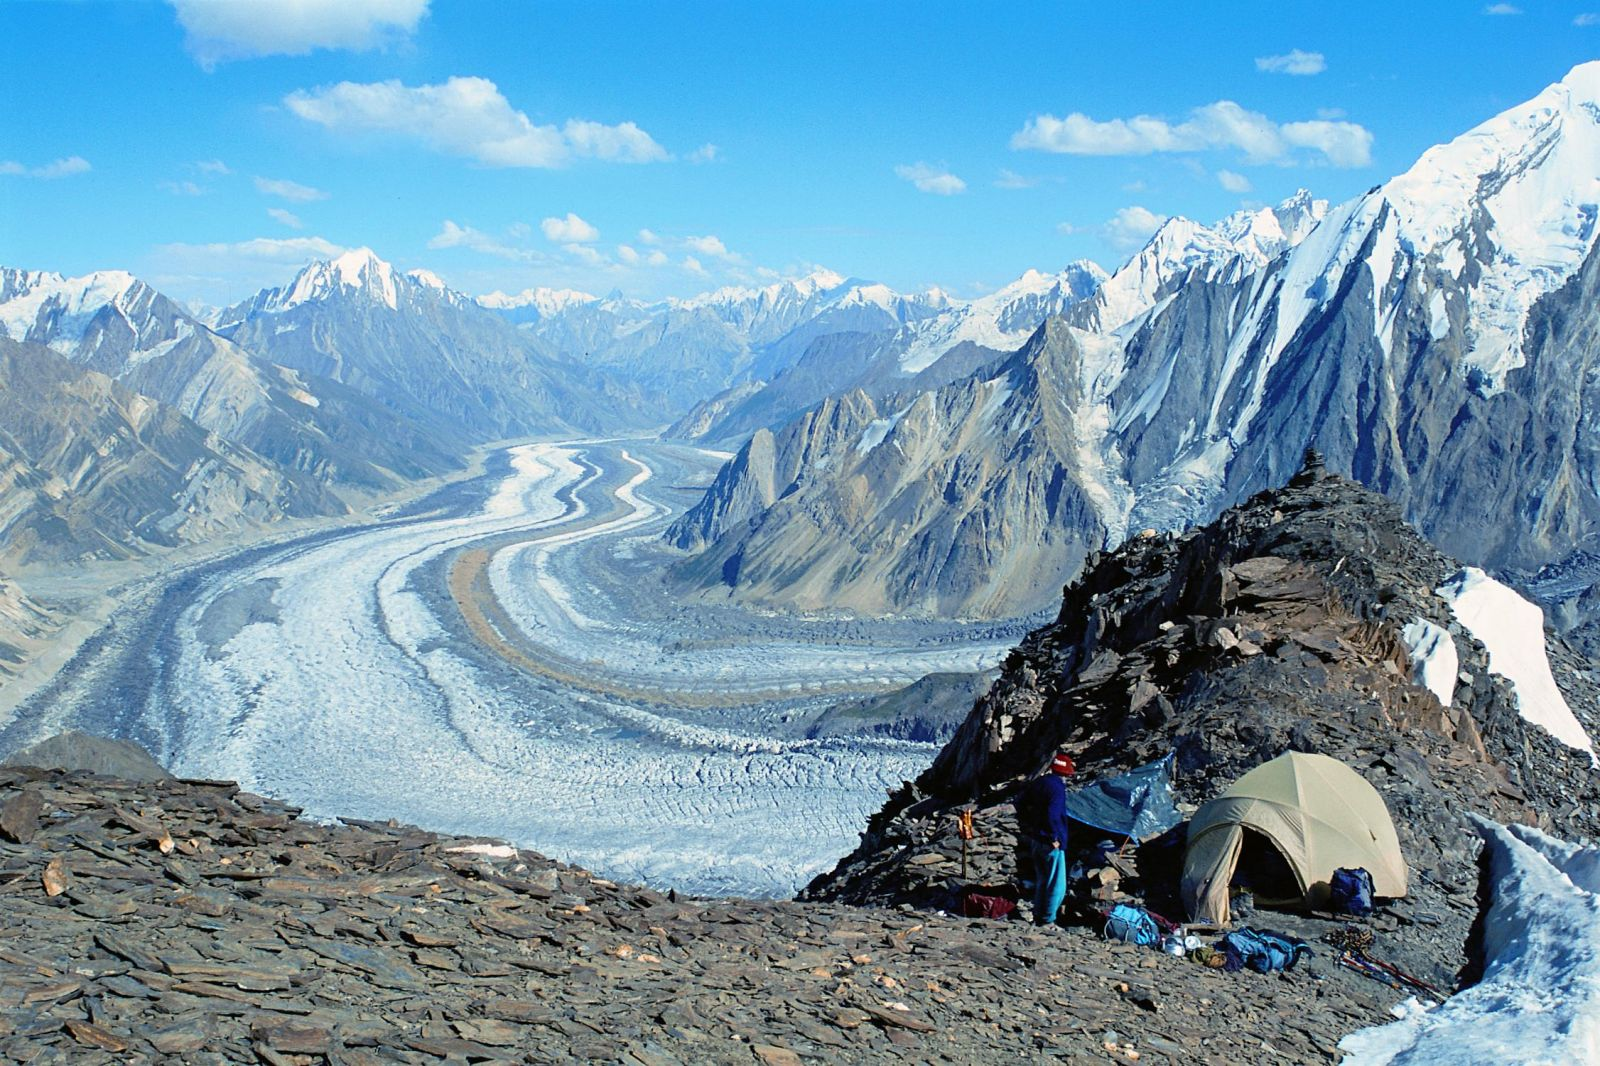 The Hunza Valley